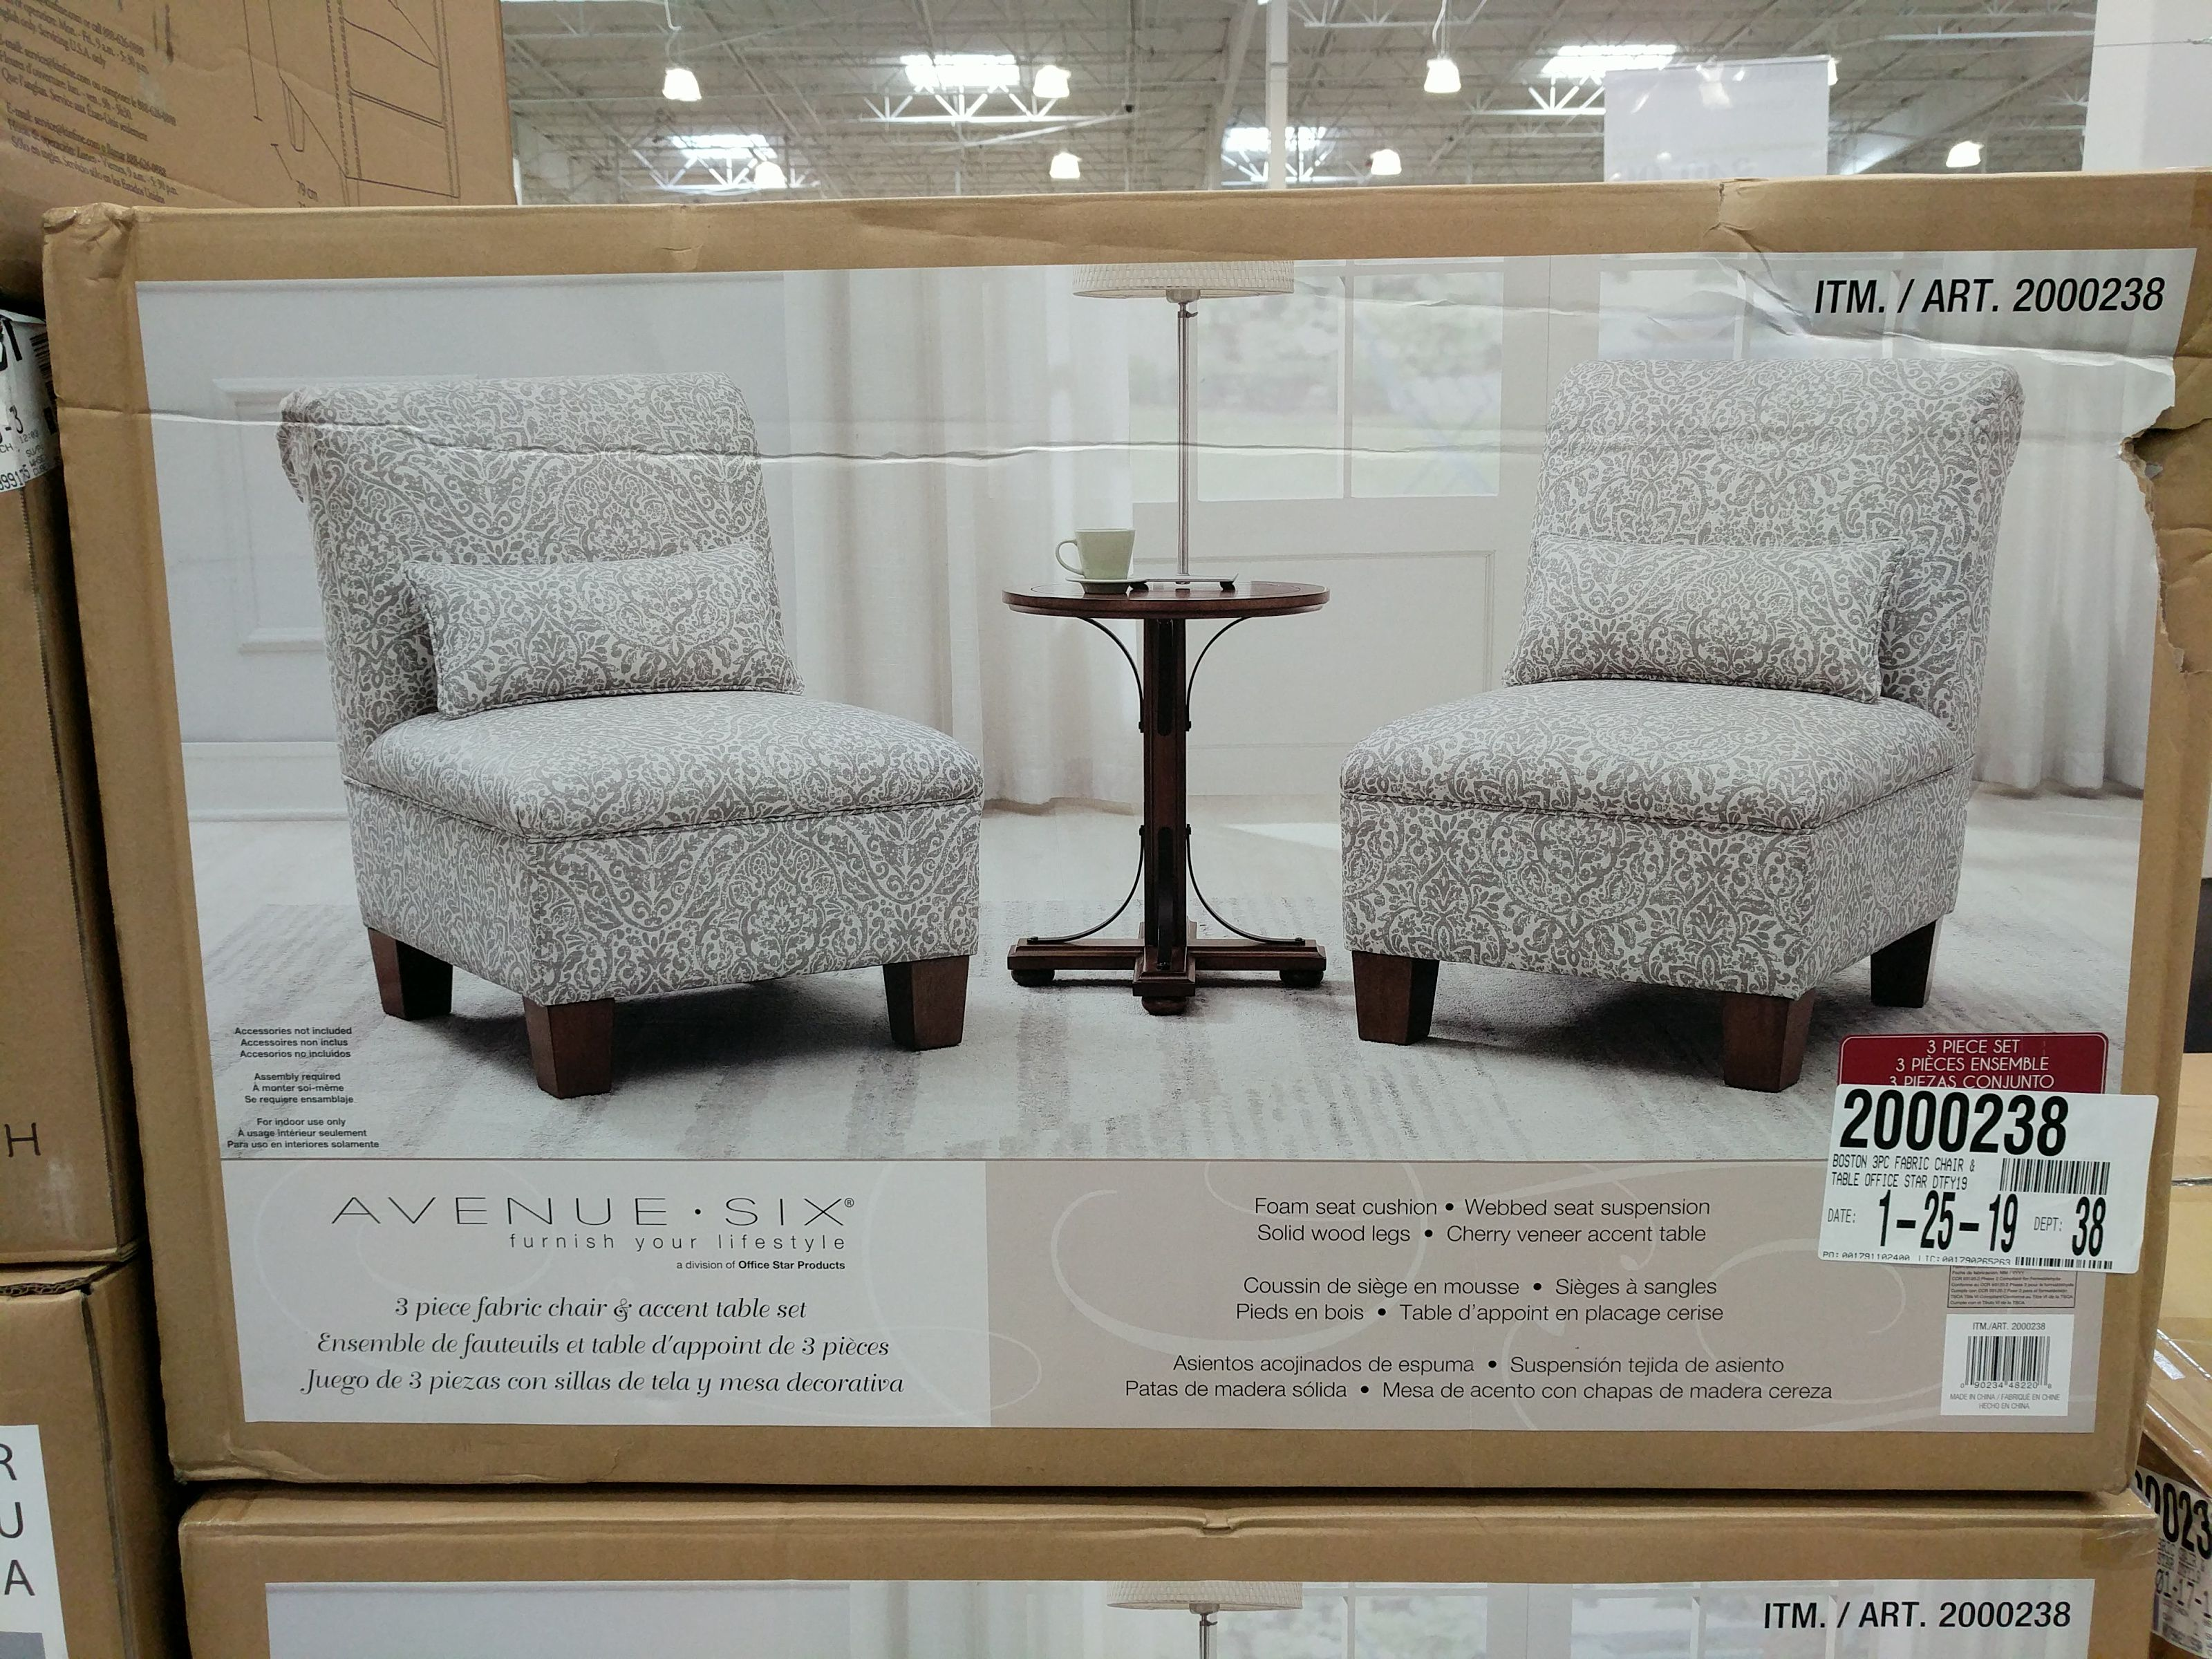 Avenue Six 3 Piece Fabric Chair Accent Table Set Accent Table